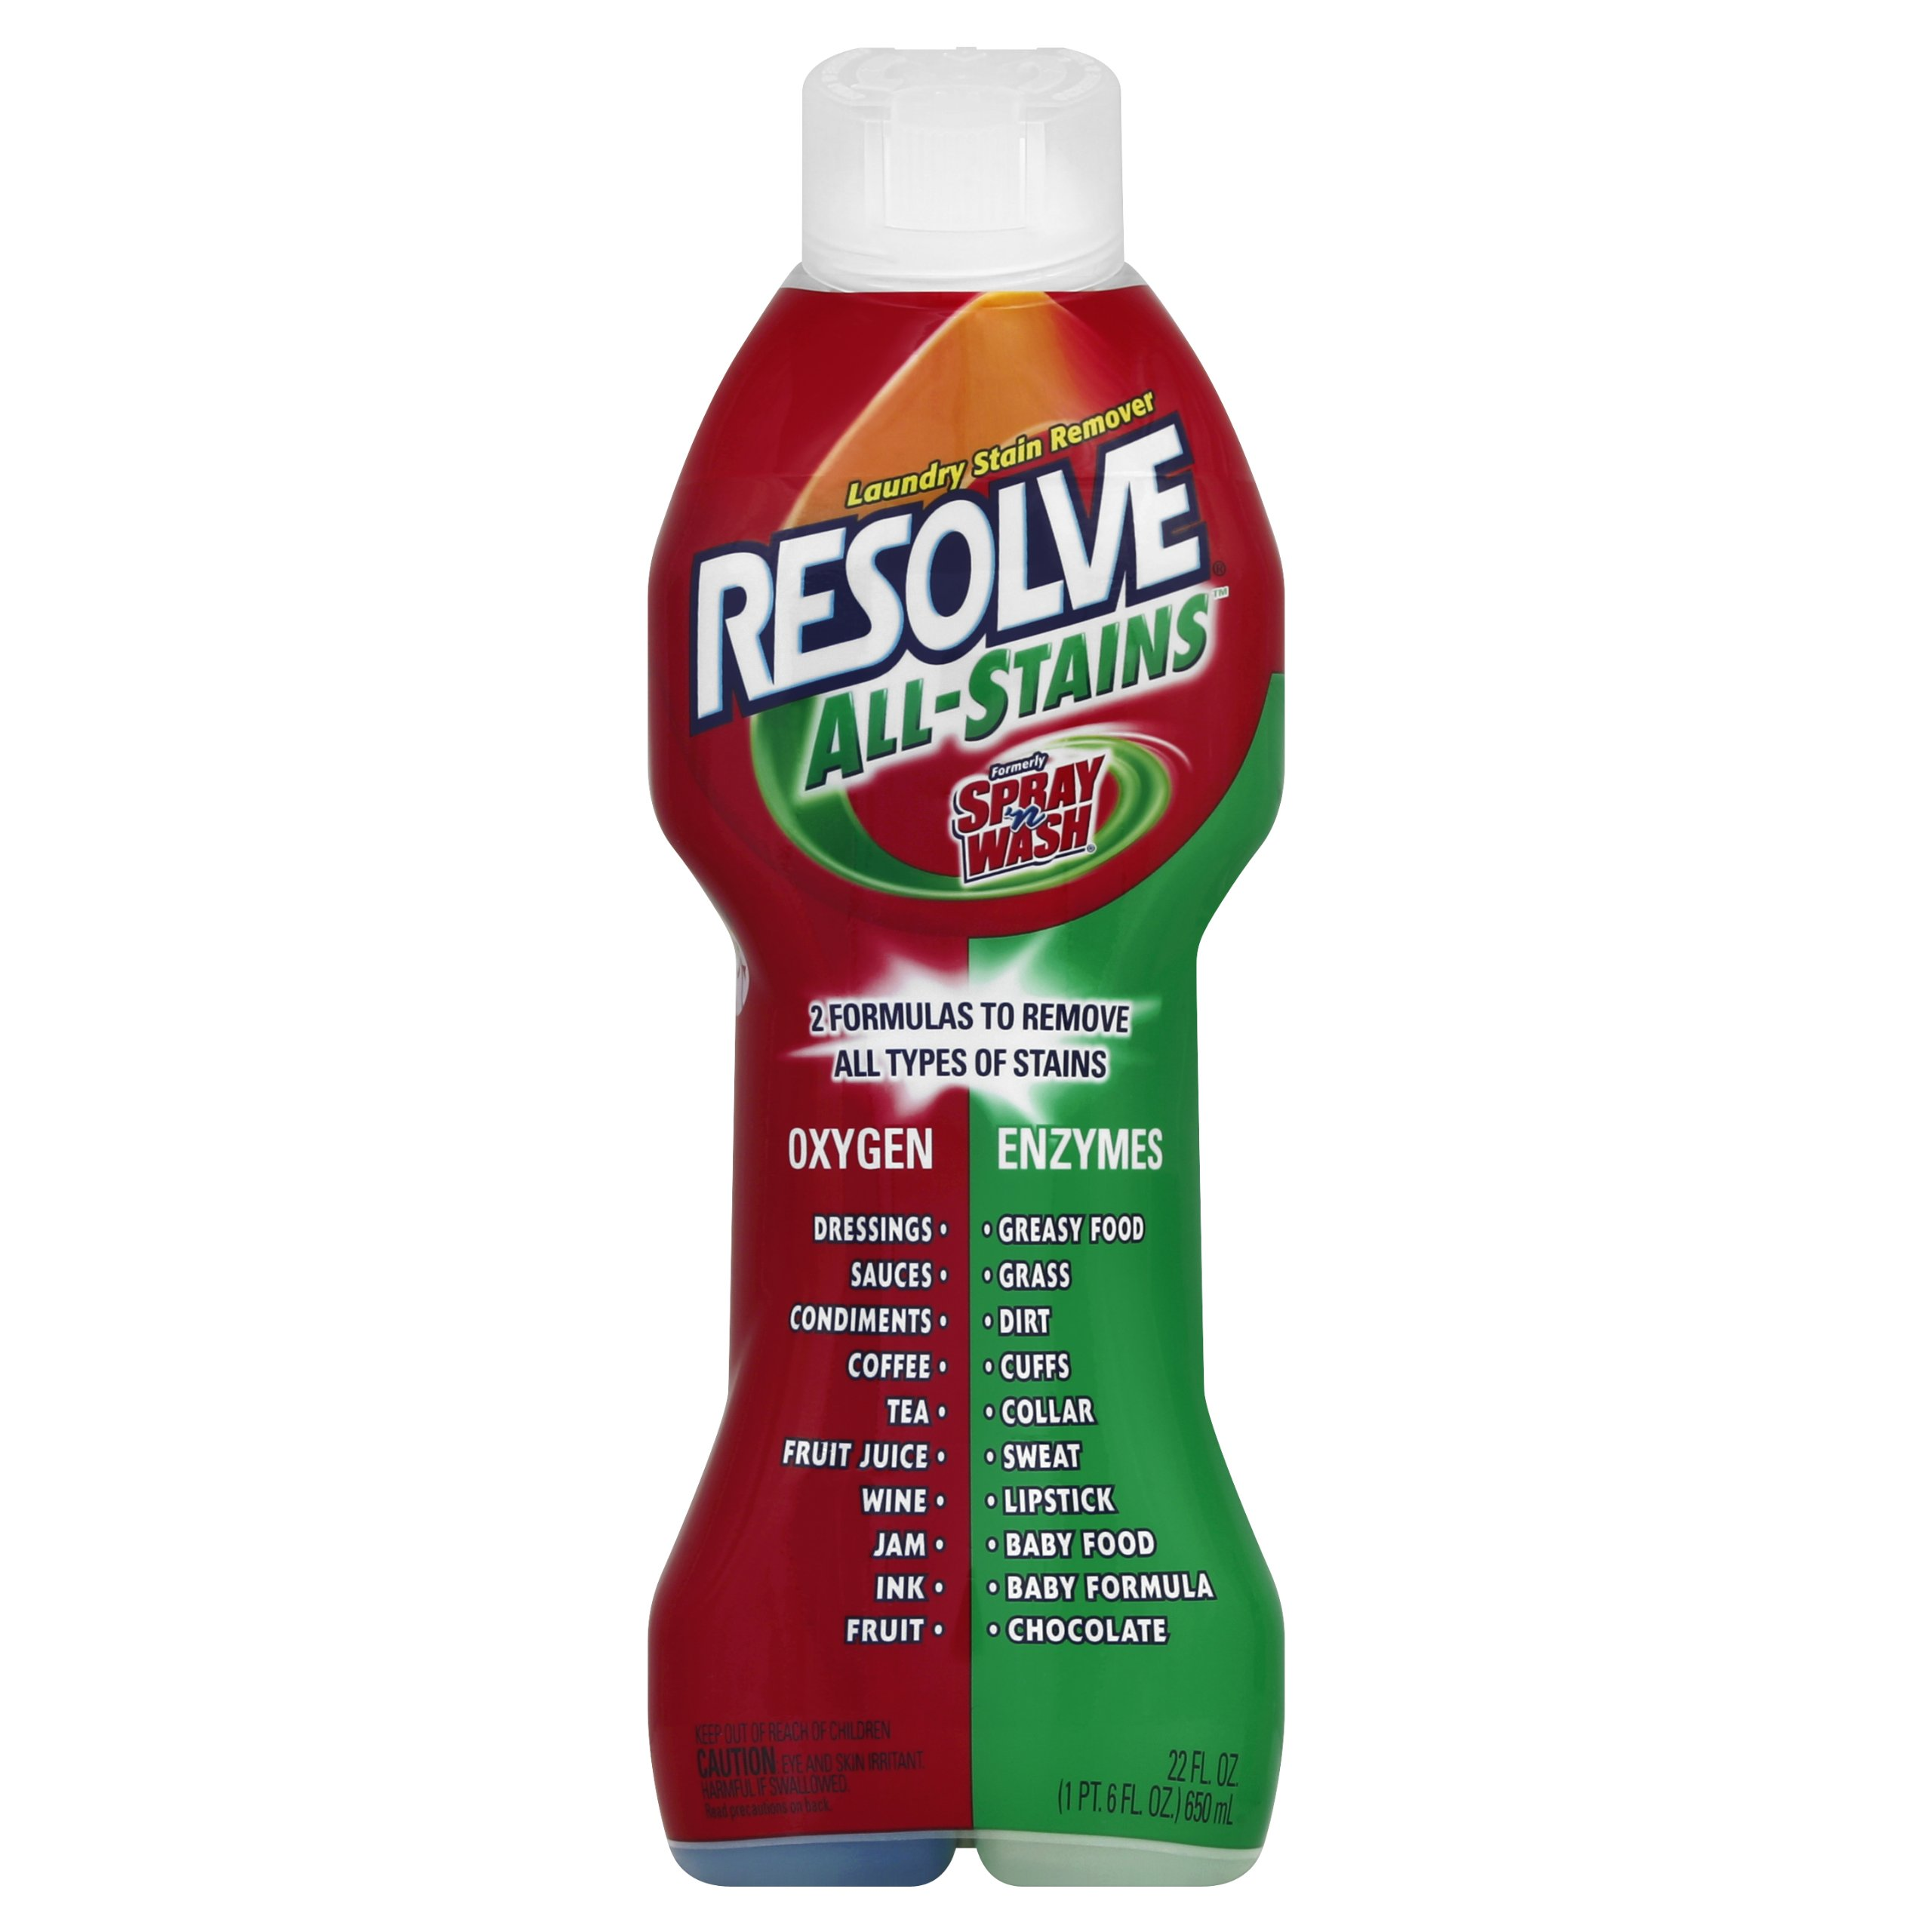 Resolve 22 oz. All Stains Laundry Stain Remover